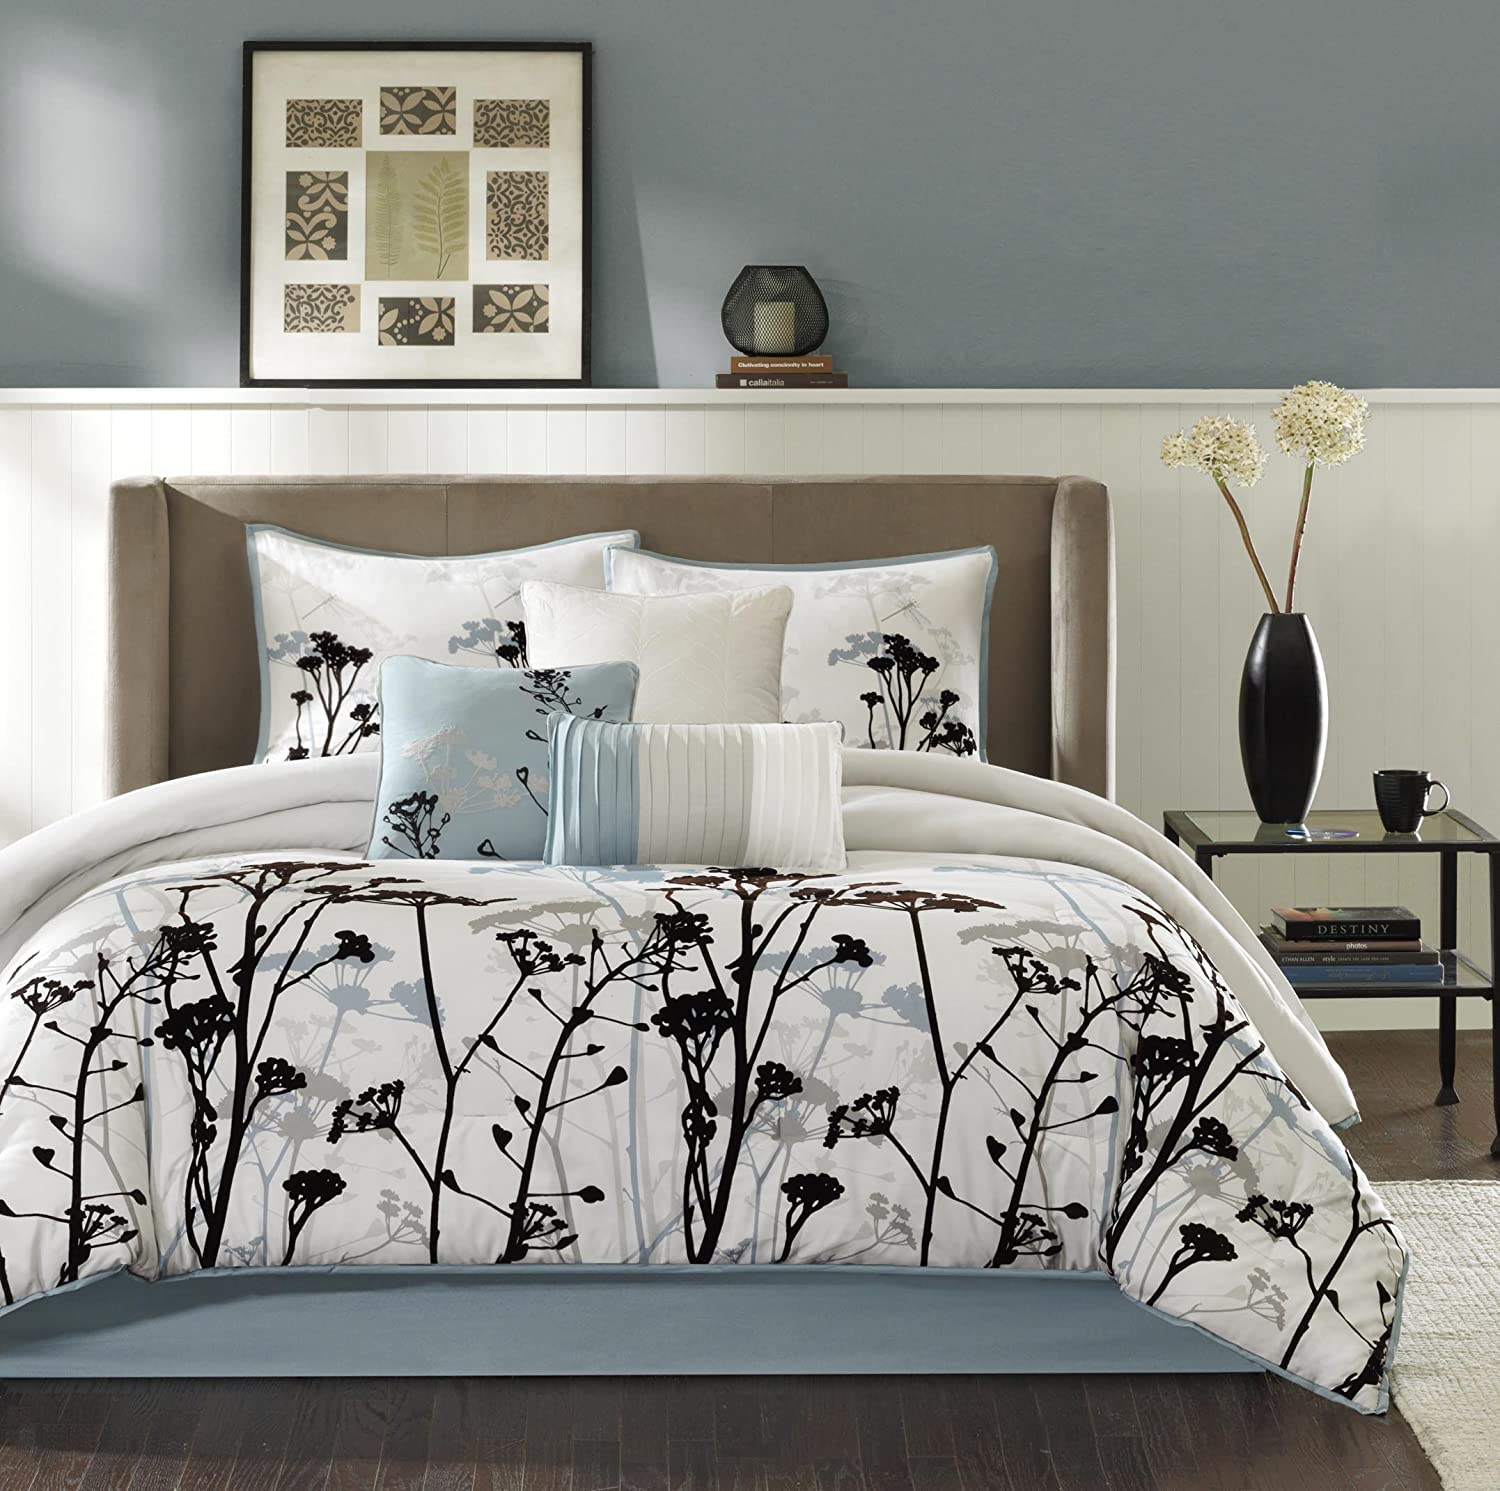 Madison Park Matilda Cal King Size Bed Comforter Set Bed in A Bag - Blue, Ivory, Floral with 3D Velvet Flocking